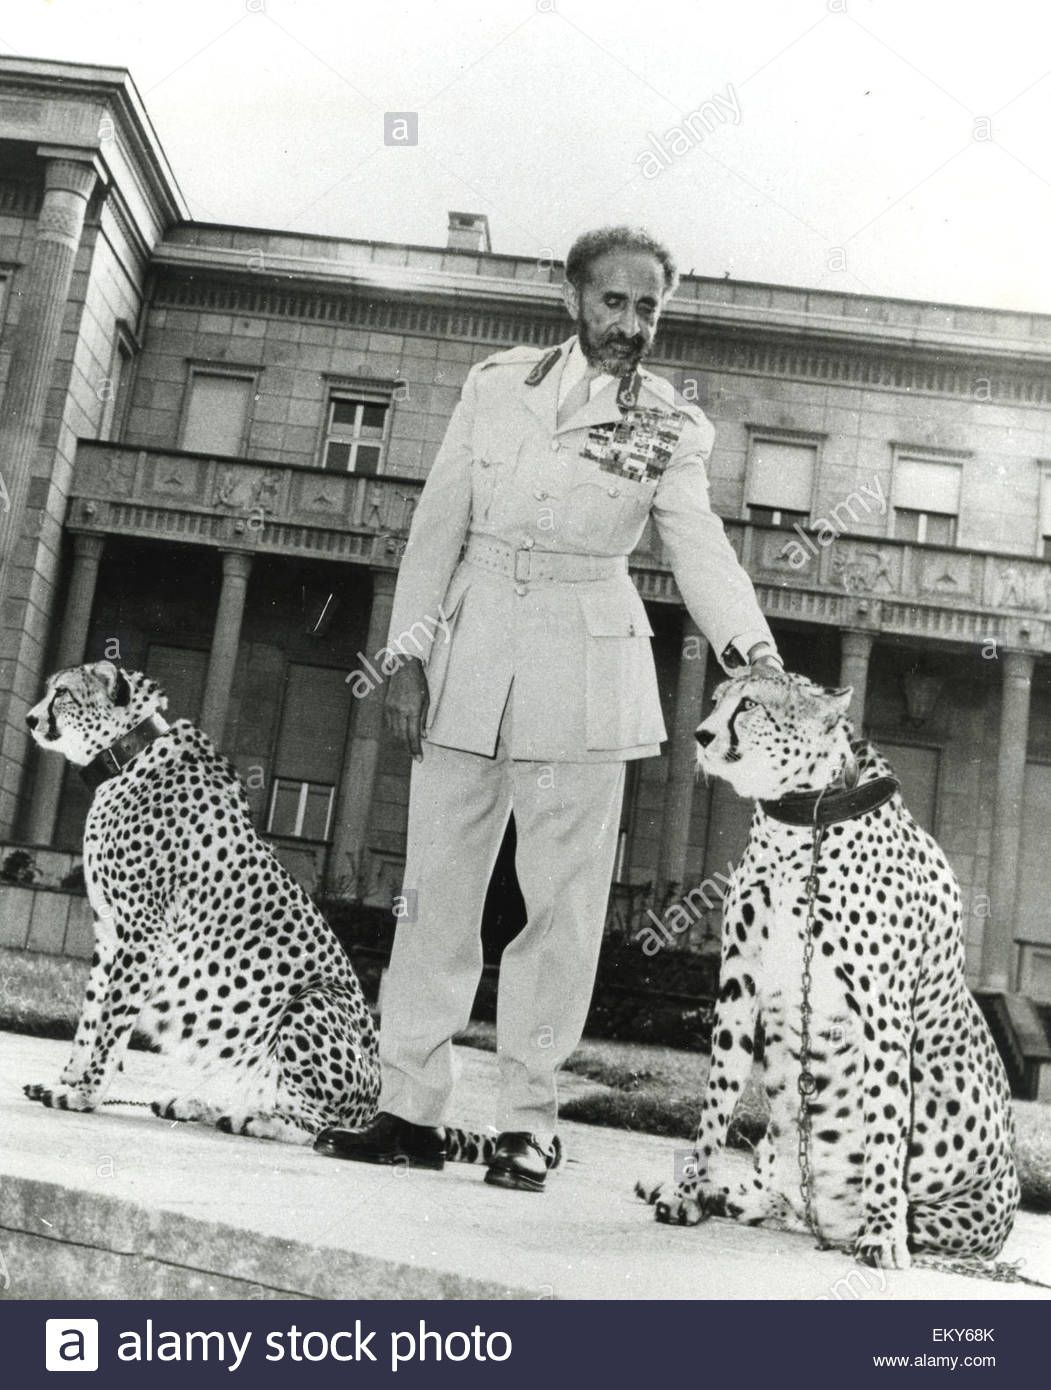 Haile Selassie 1892 1975 Etheopian Regent About 1955 Photo Interfoto Eky68k From Alamy S Library Of African Royalty Haile Selassie Black History Education